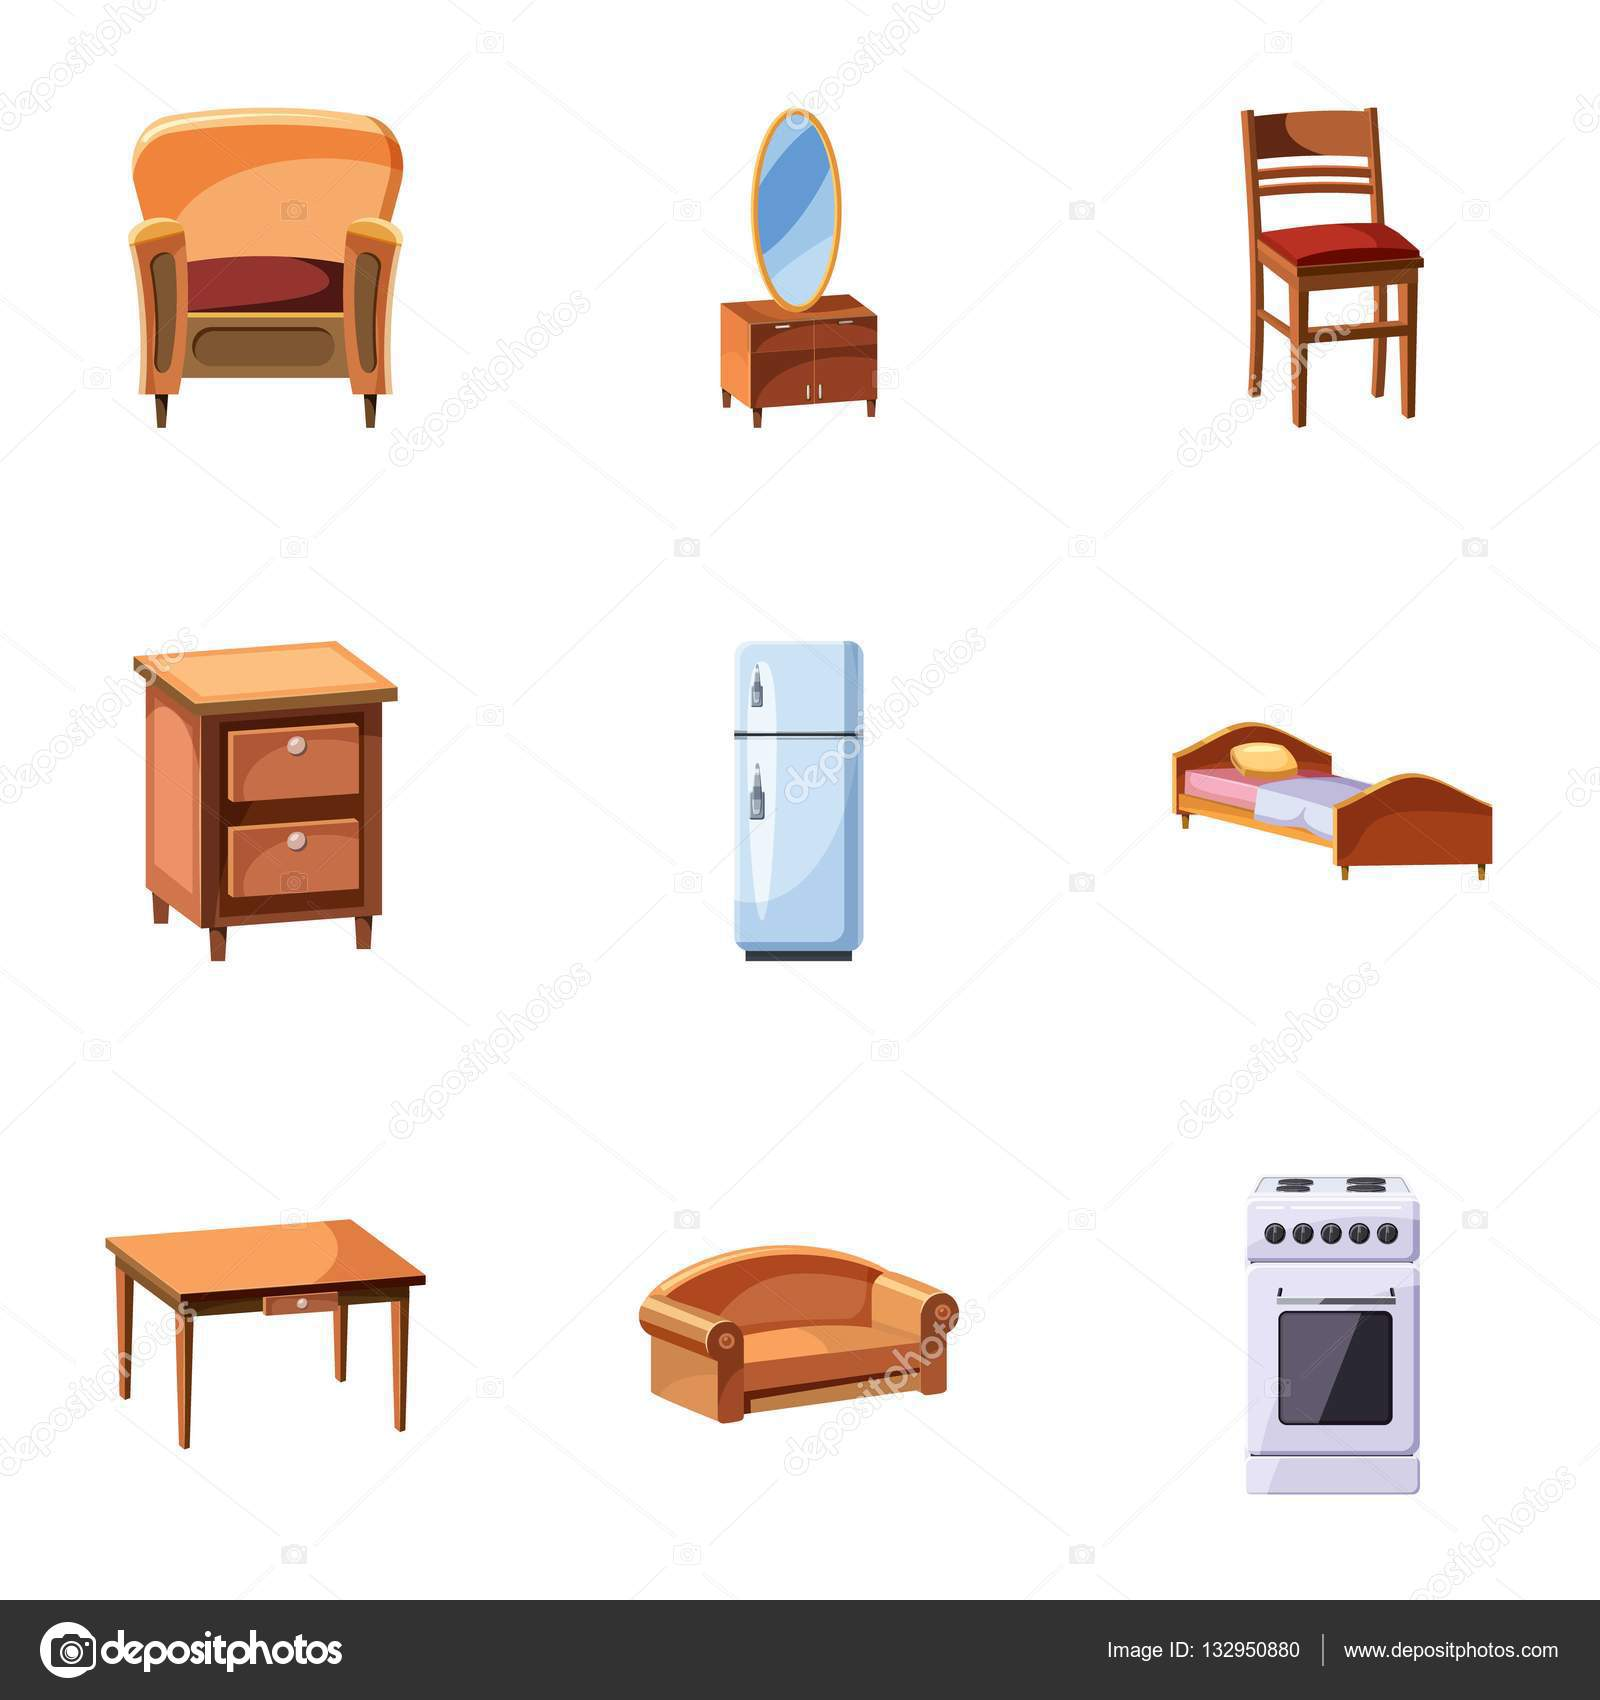 Home furnishings icons set cartoon style stock vector for Muebles economicos para el hogar